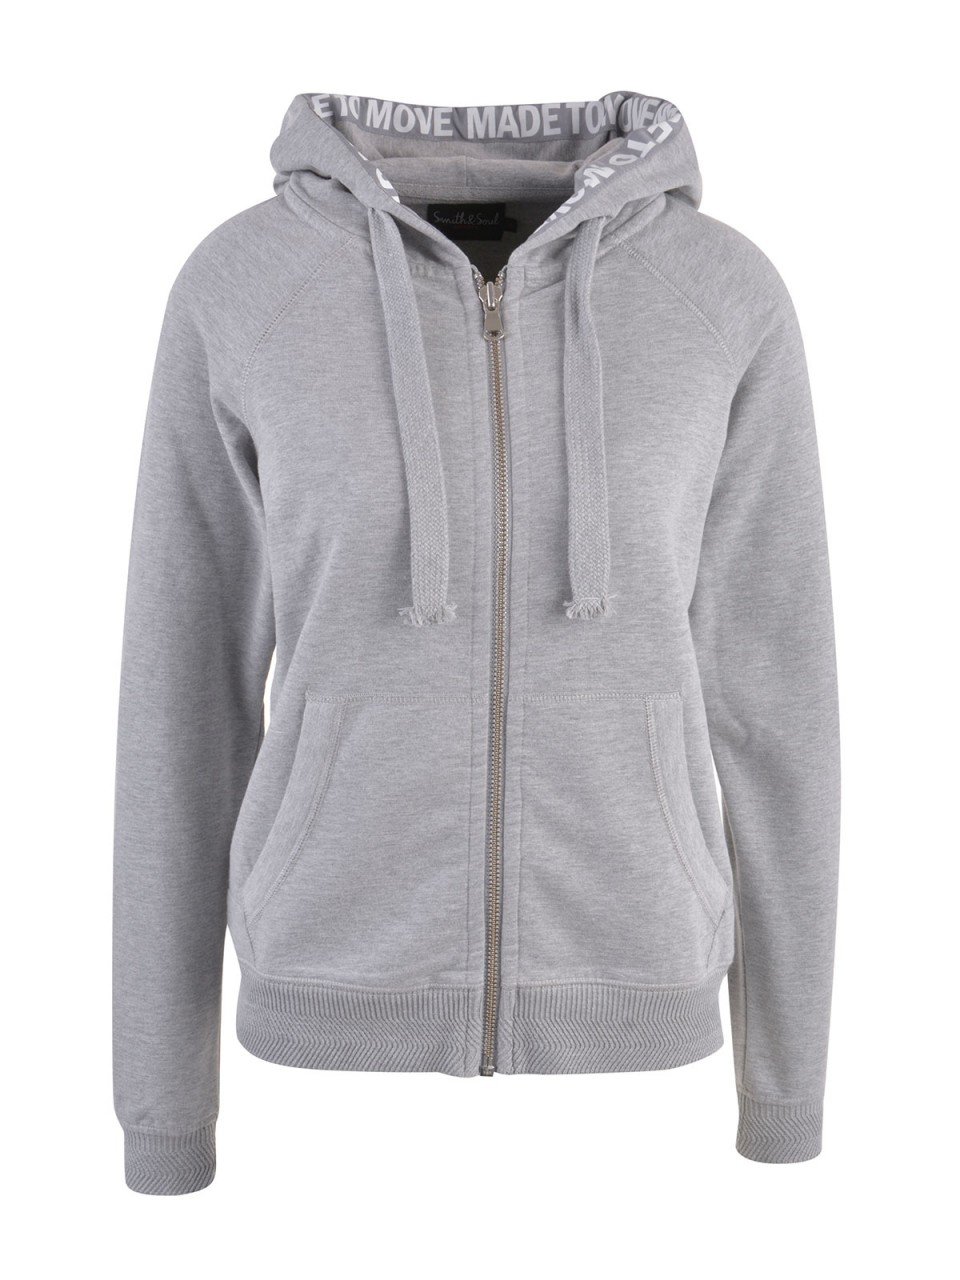 Jacken - SMITH SOUL Damen Sweatjacke, grau  - Onlineshop Designermode.com